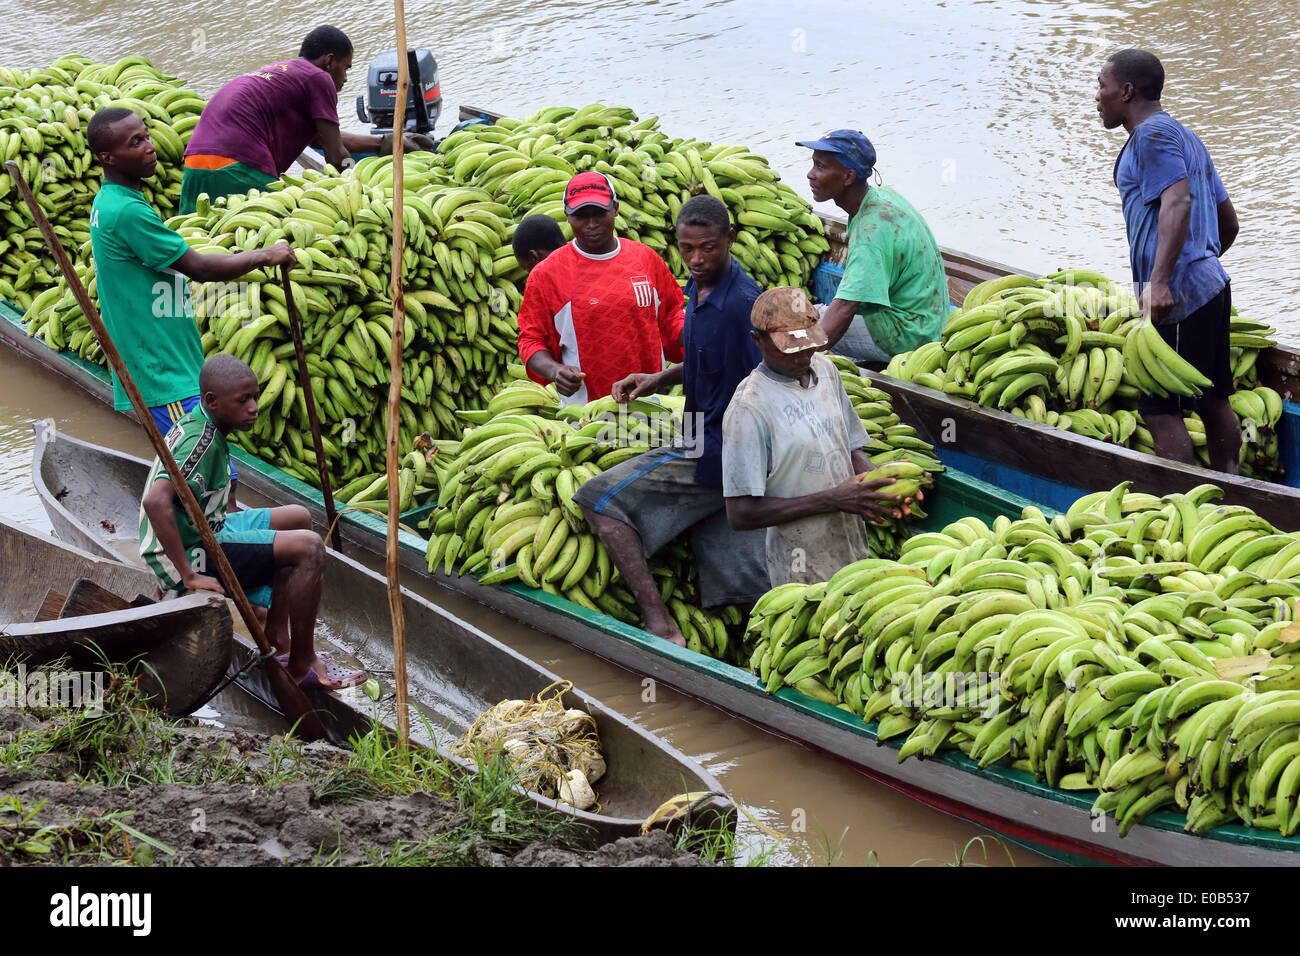 Bananas are loaded, boats on the river Rio Baudo, Choco province, Colombia - Stock Image